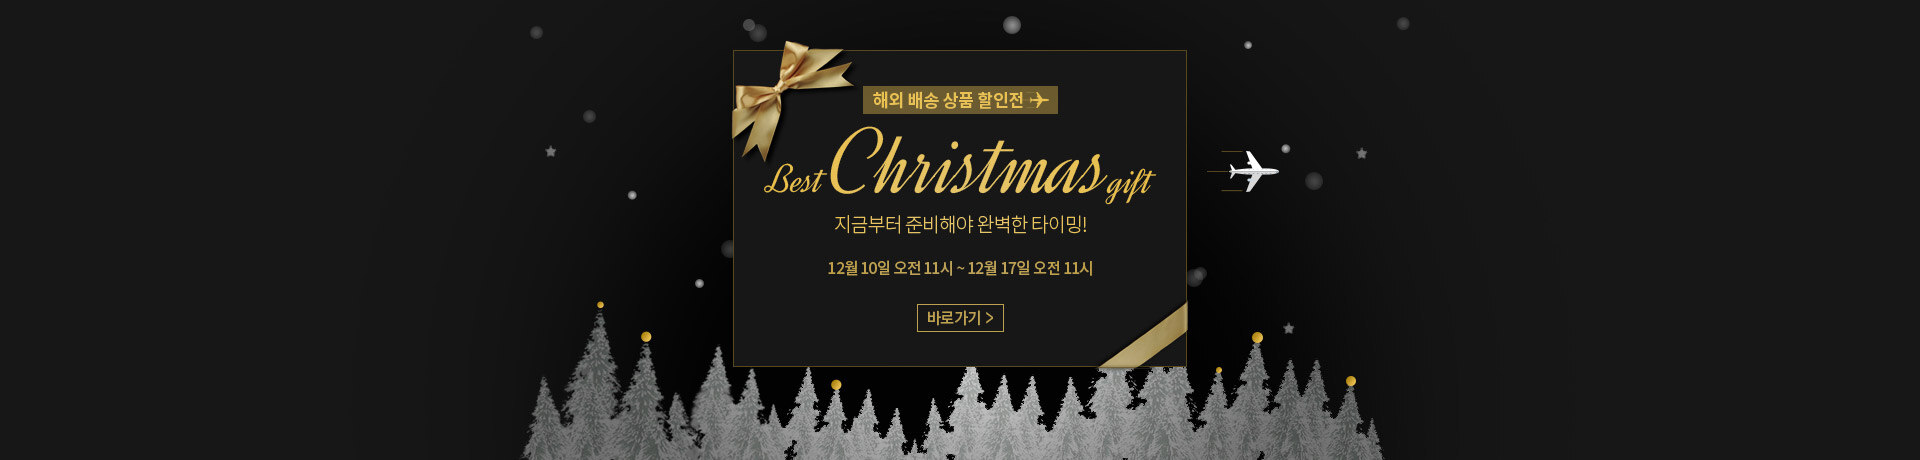 181210_ma_best-christmas-gift_pc-1__-_171717